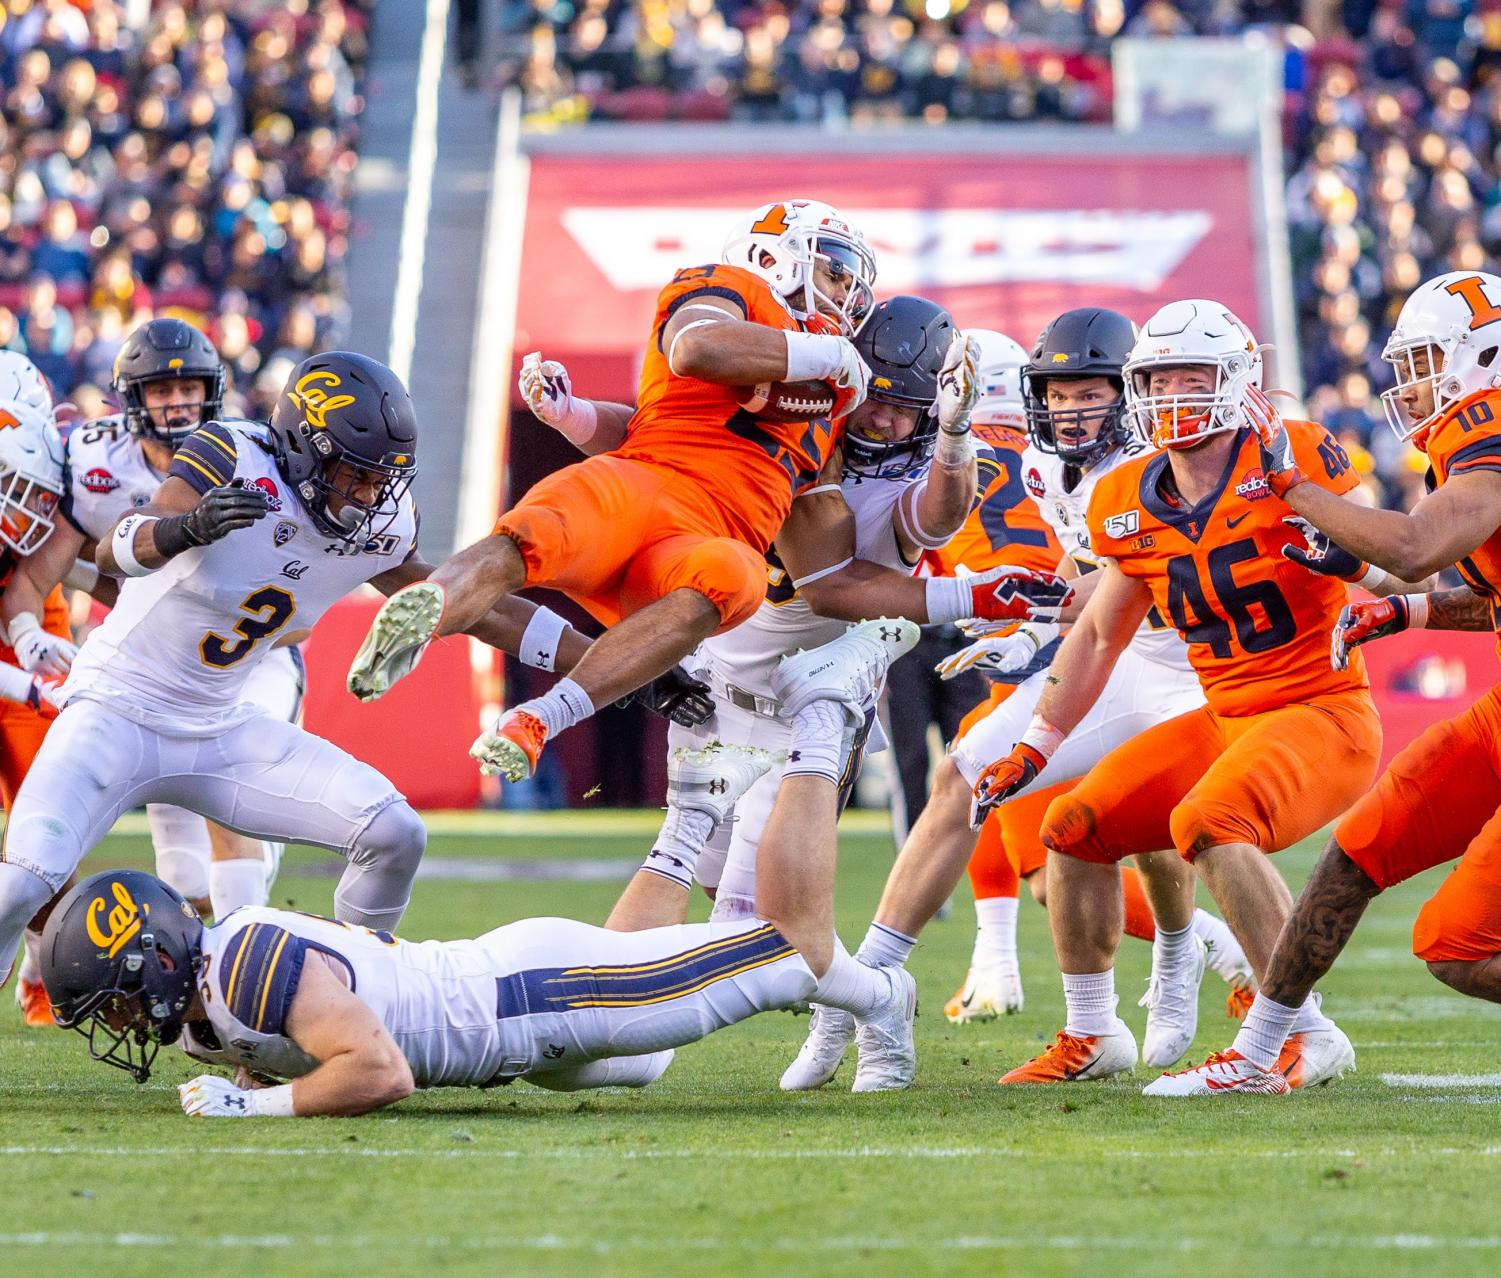 Senior runningback Dre Brown attempts to maintain possession of the ball before getting tackled during the Redbox Bowl in Santa Clara, Calif. Monday. California beat Illinois 35-20 at Levi's Stadium, home of the San Francisco 49ers, in the Redbox Bowl. Photo taken by Jonathan Bonaguro.